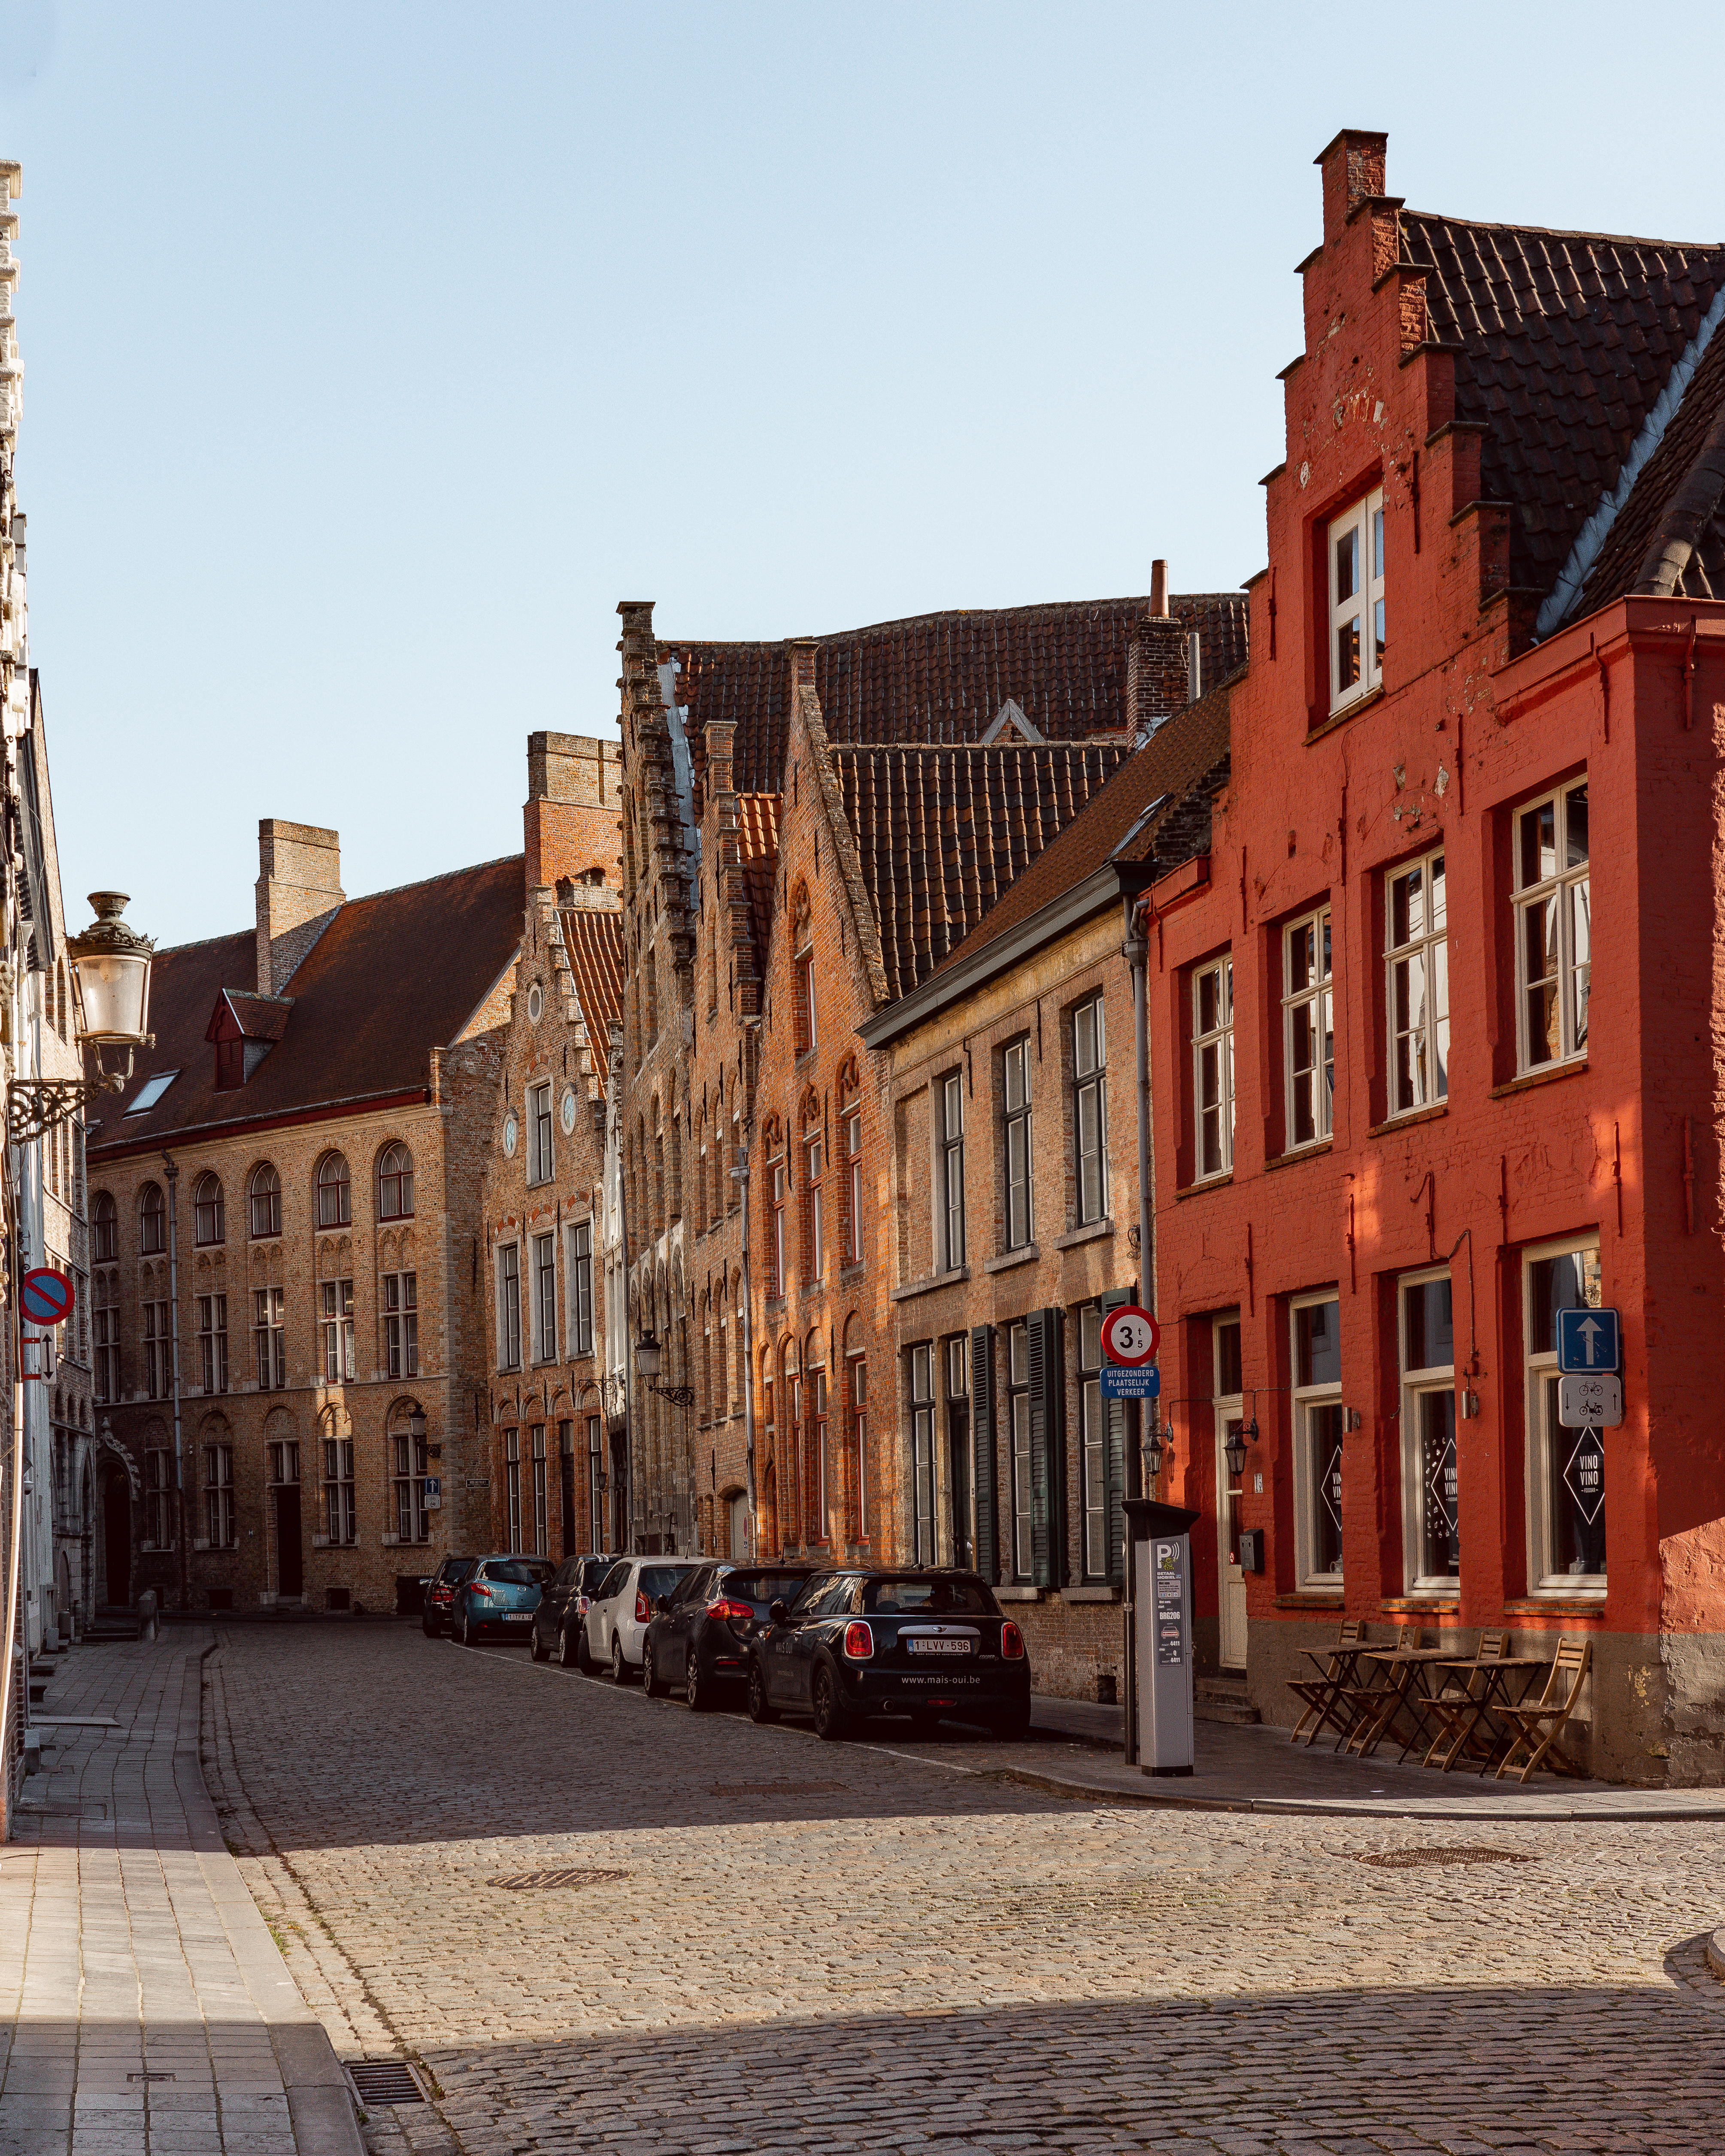 The Most Picturesque Locations in Bruges | Grauwwerkersstraat